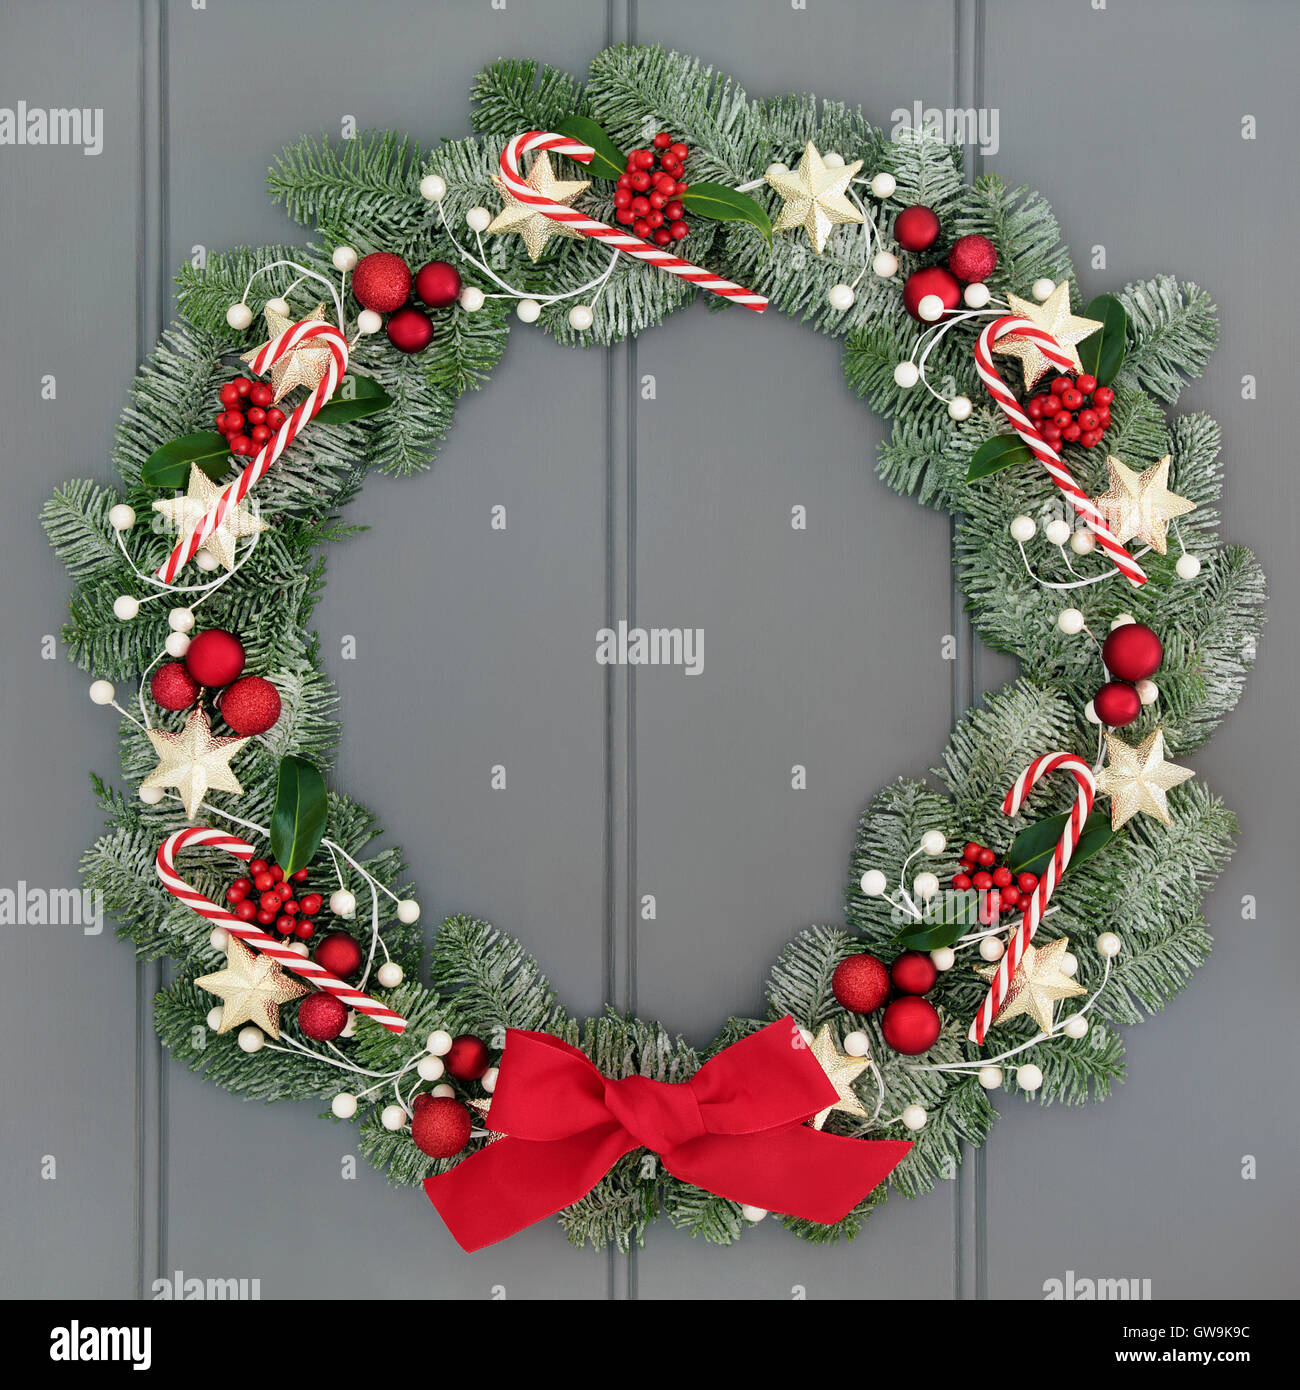 Advent And Christmas Wreath Decoration With Candy Canes Red Baubles Stock Photo Alamy